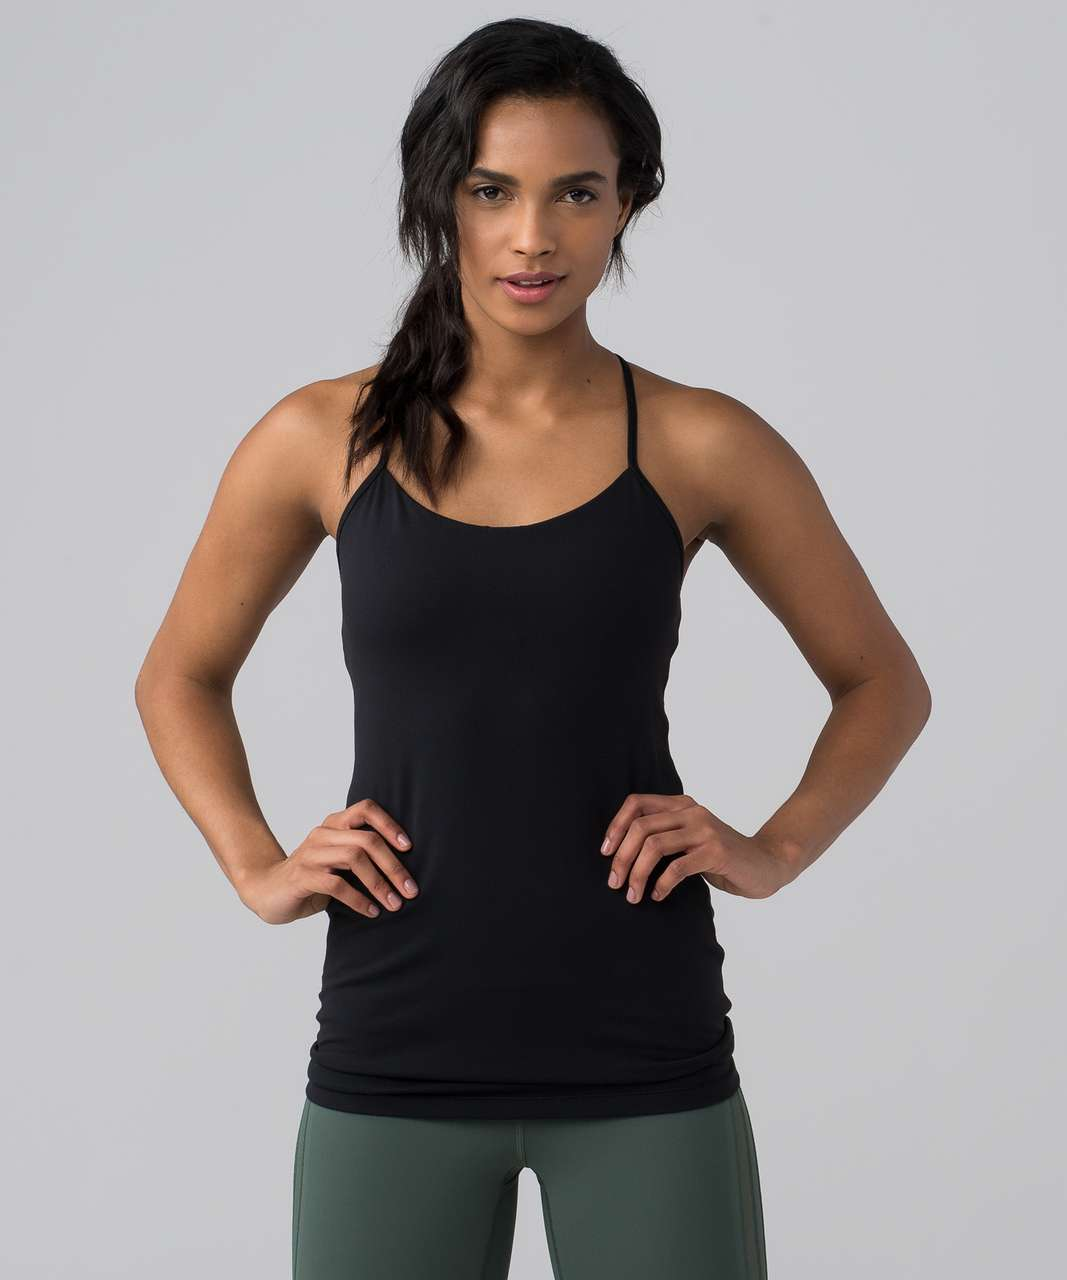 Lululemon Power Pose Tank *Light Support For A/B Cup - Black